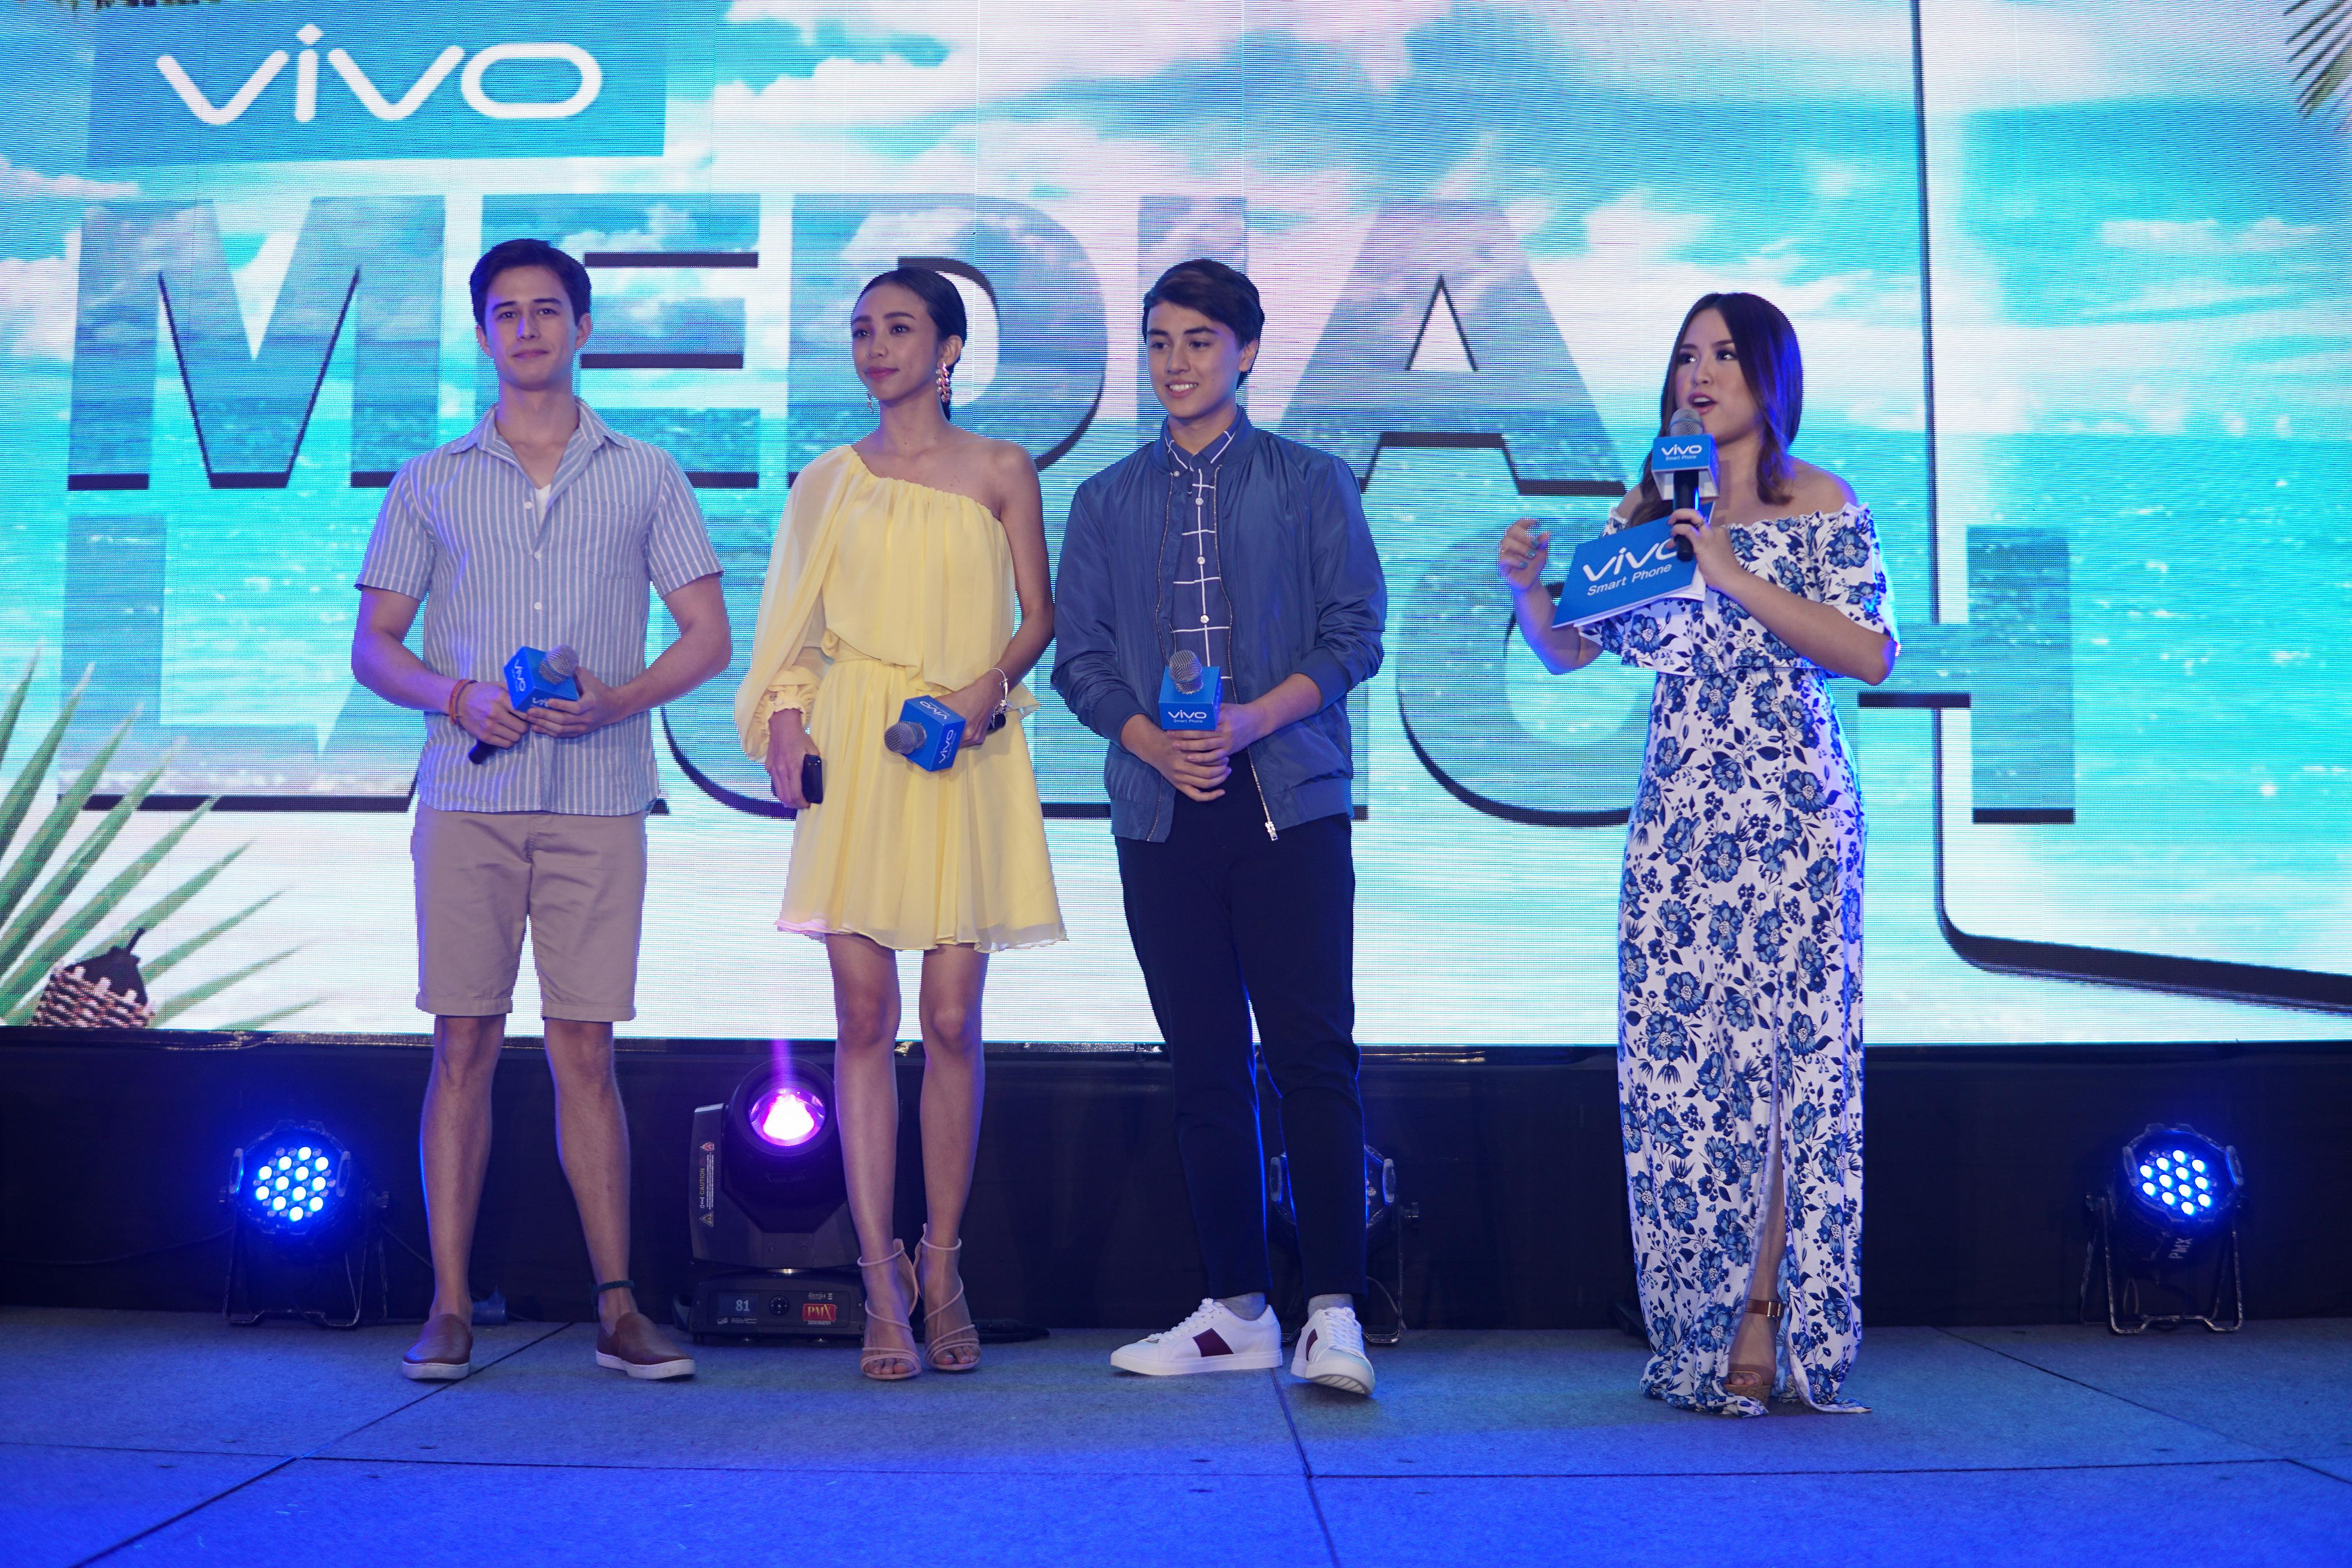 Vivo also introduced its newest endorsers, Ivan Dorschner and Edward Barbe